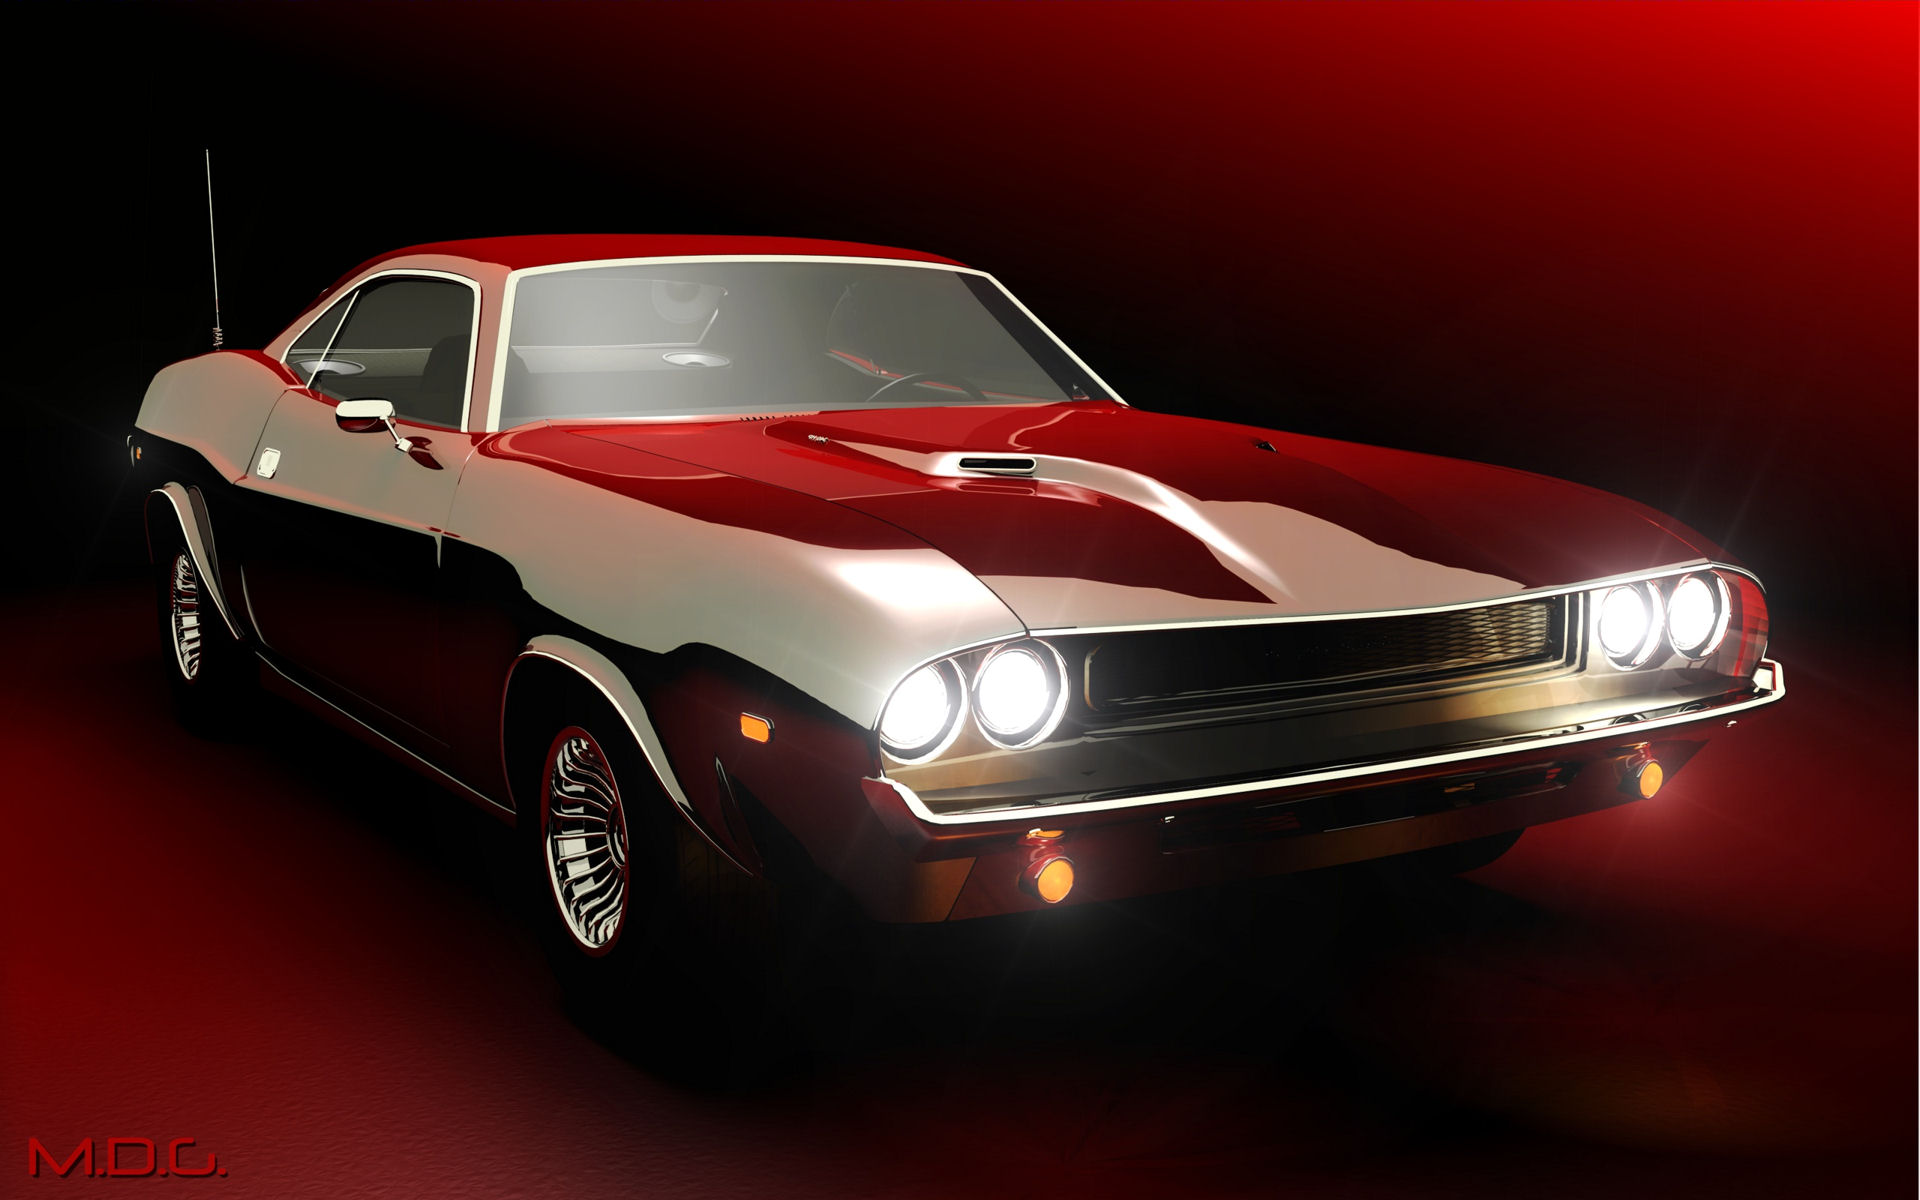 Muscle Car Wallpapers For Desktop 5381 Hd Wallpapers in Cars 1920x1200